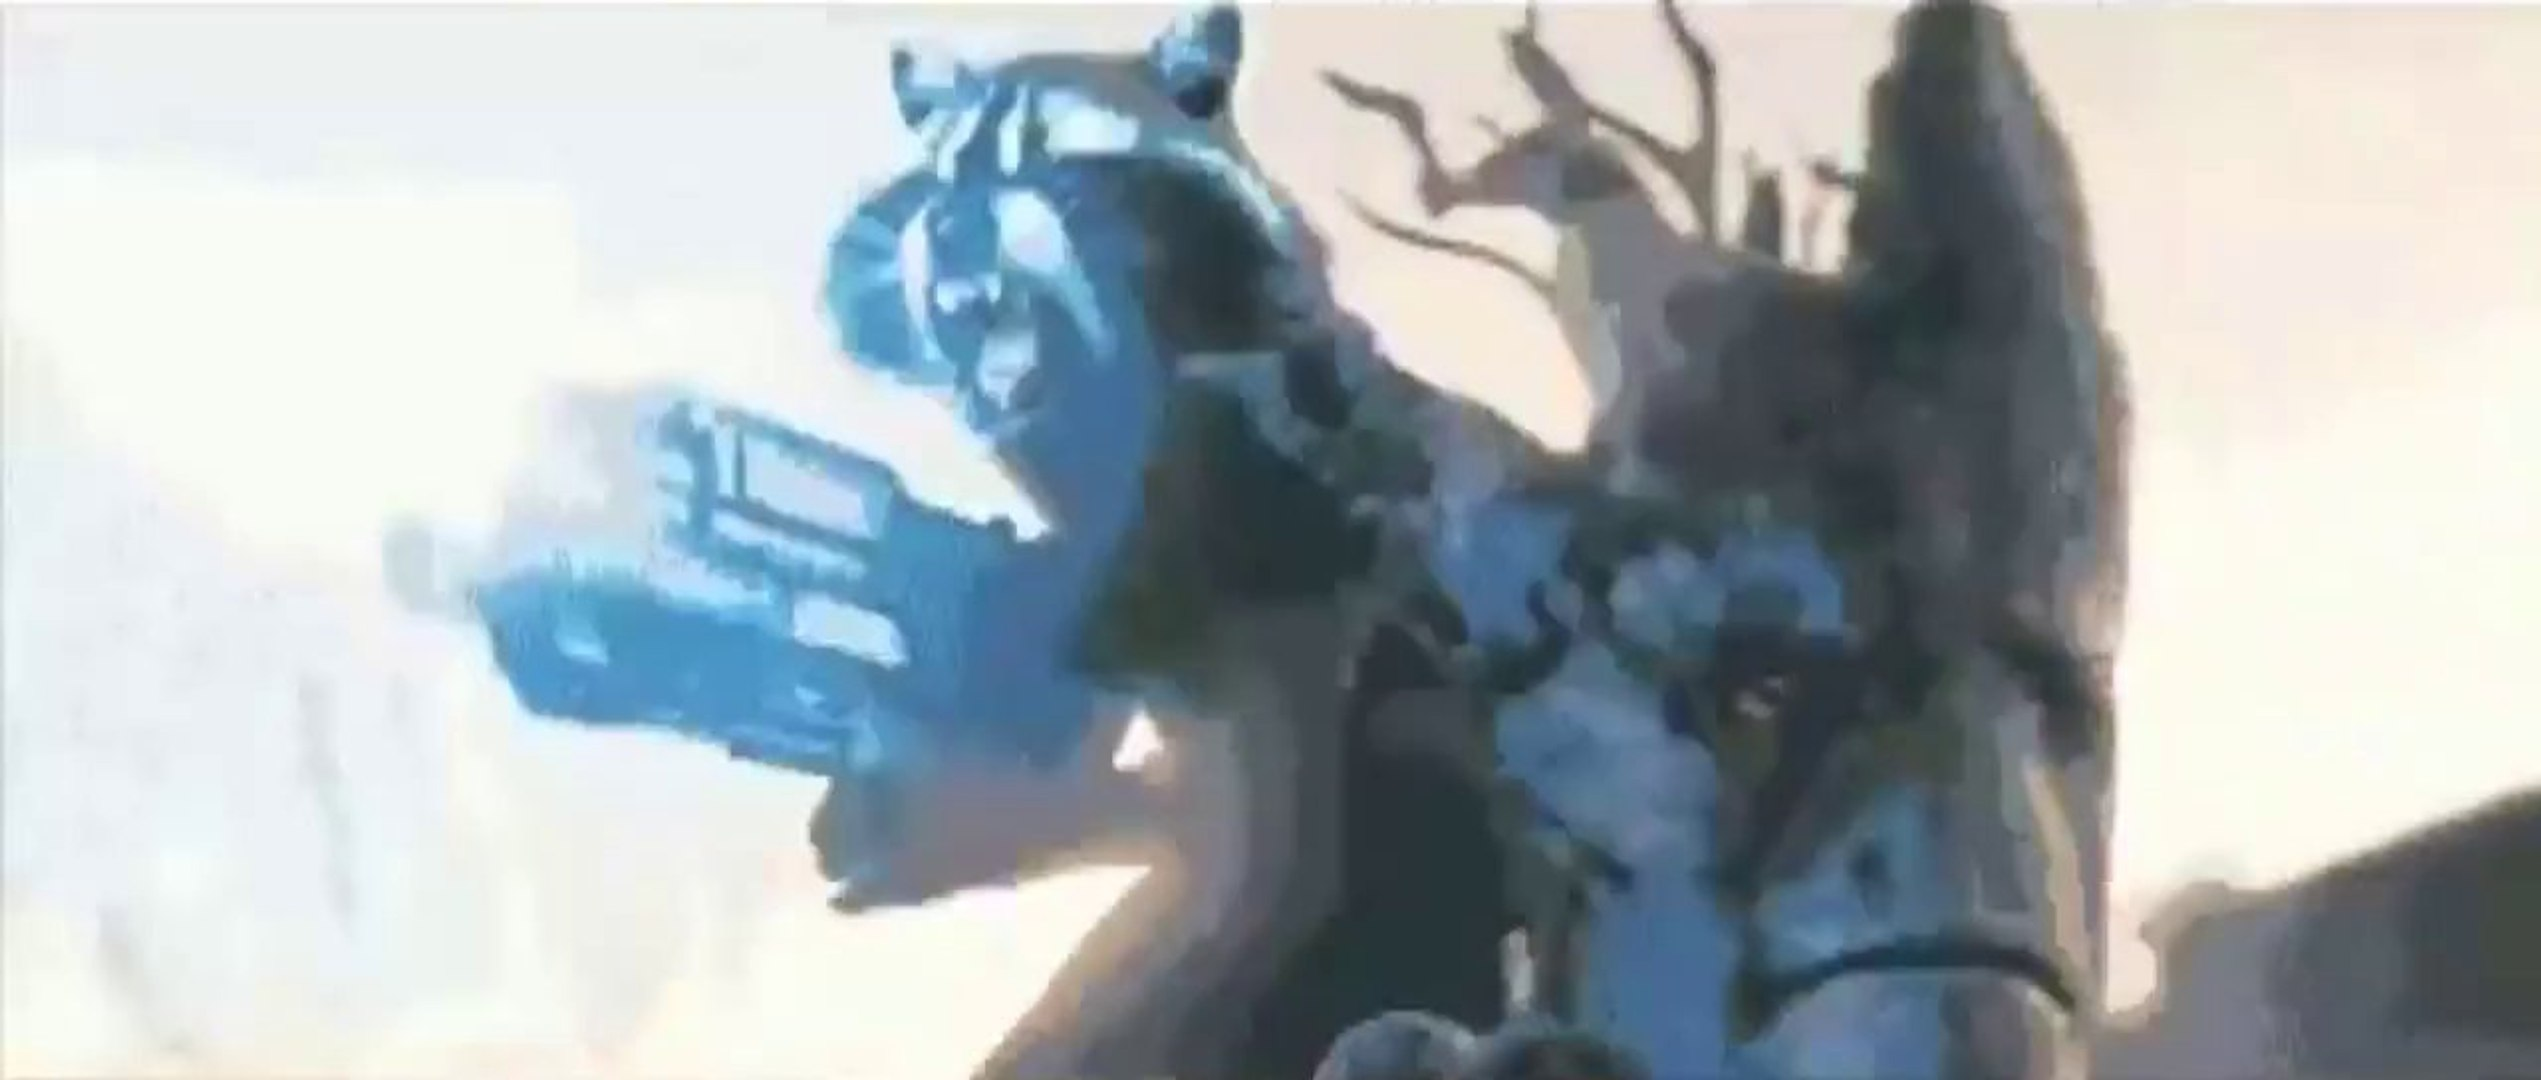 Guardians of the Galaxy - Preview Teaser Trailer Rocket Raccon & Groot